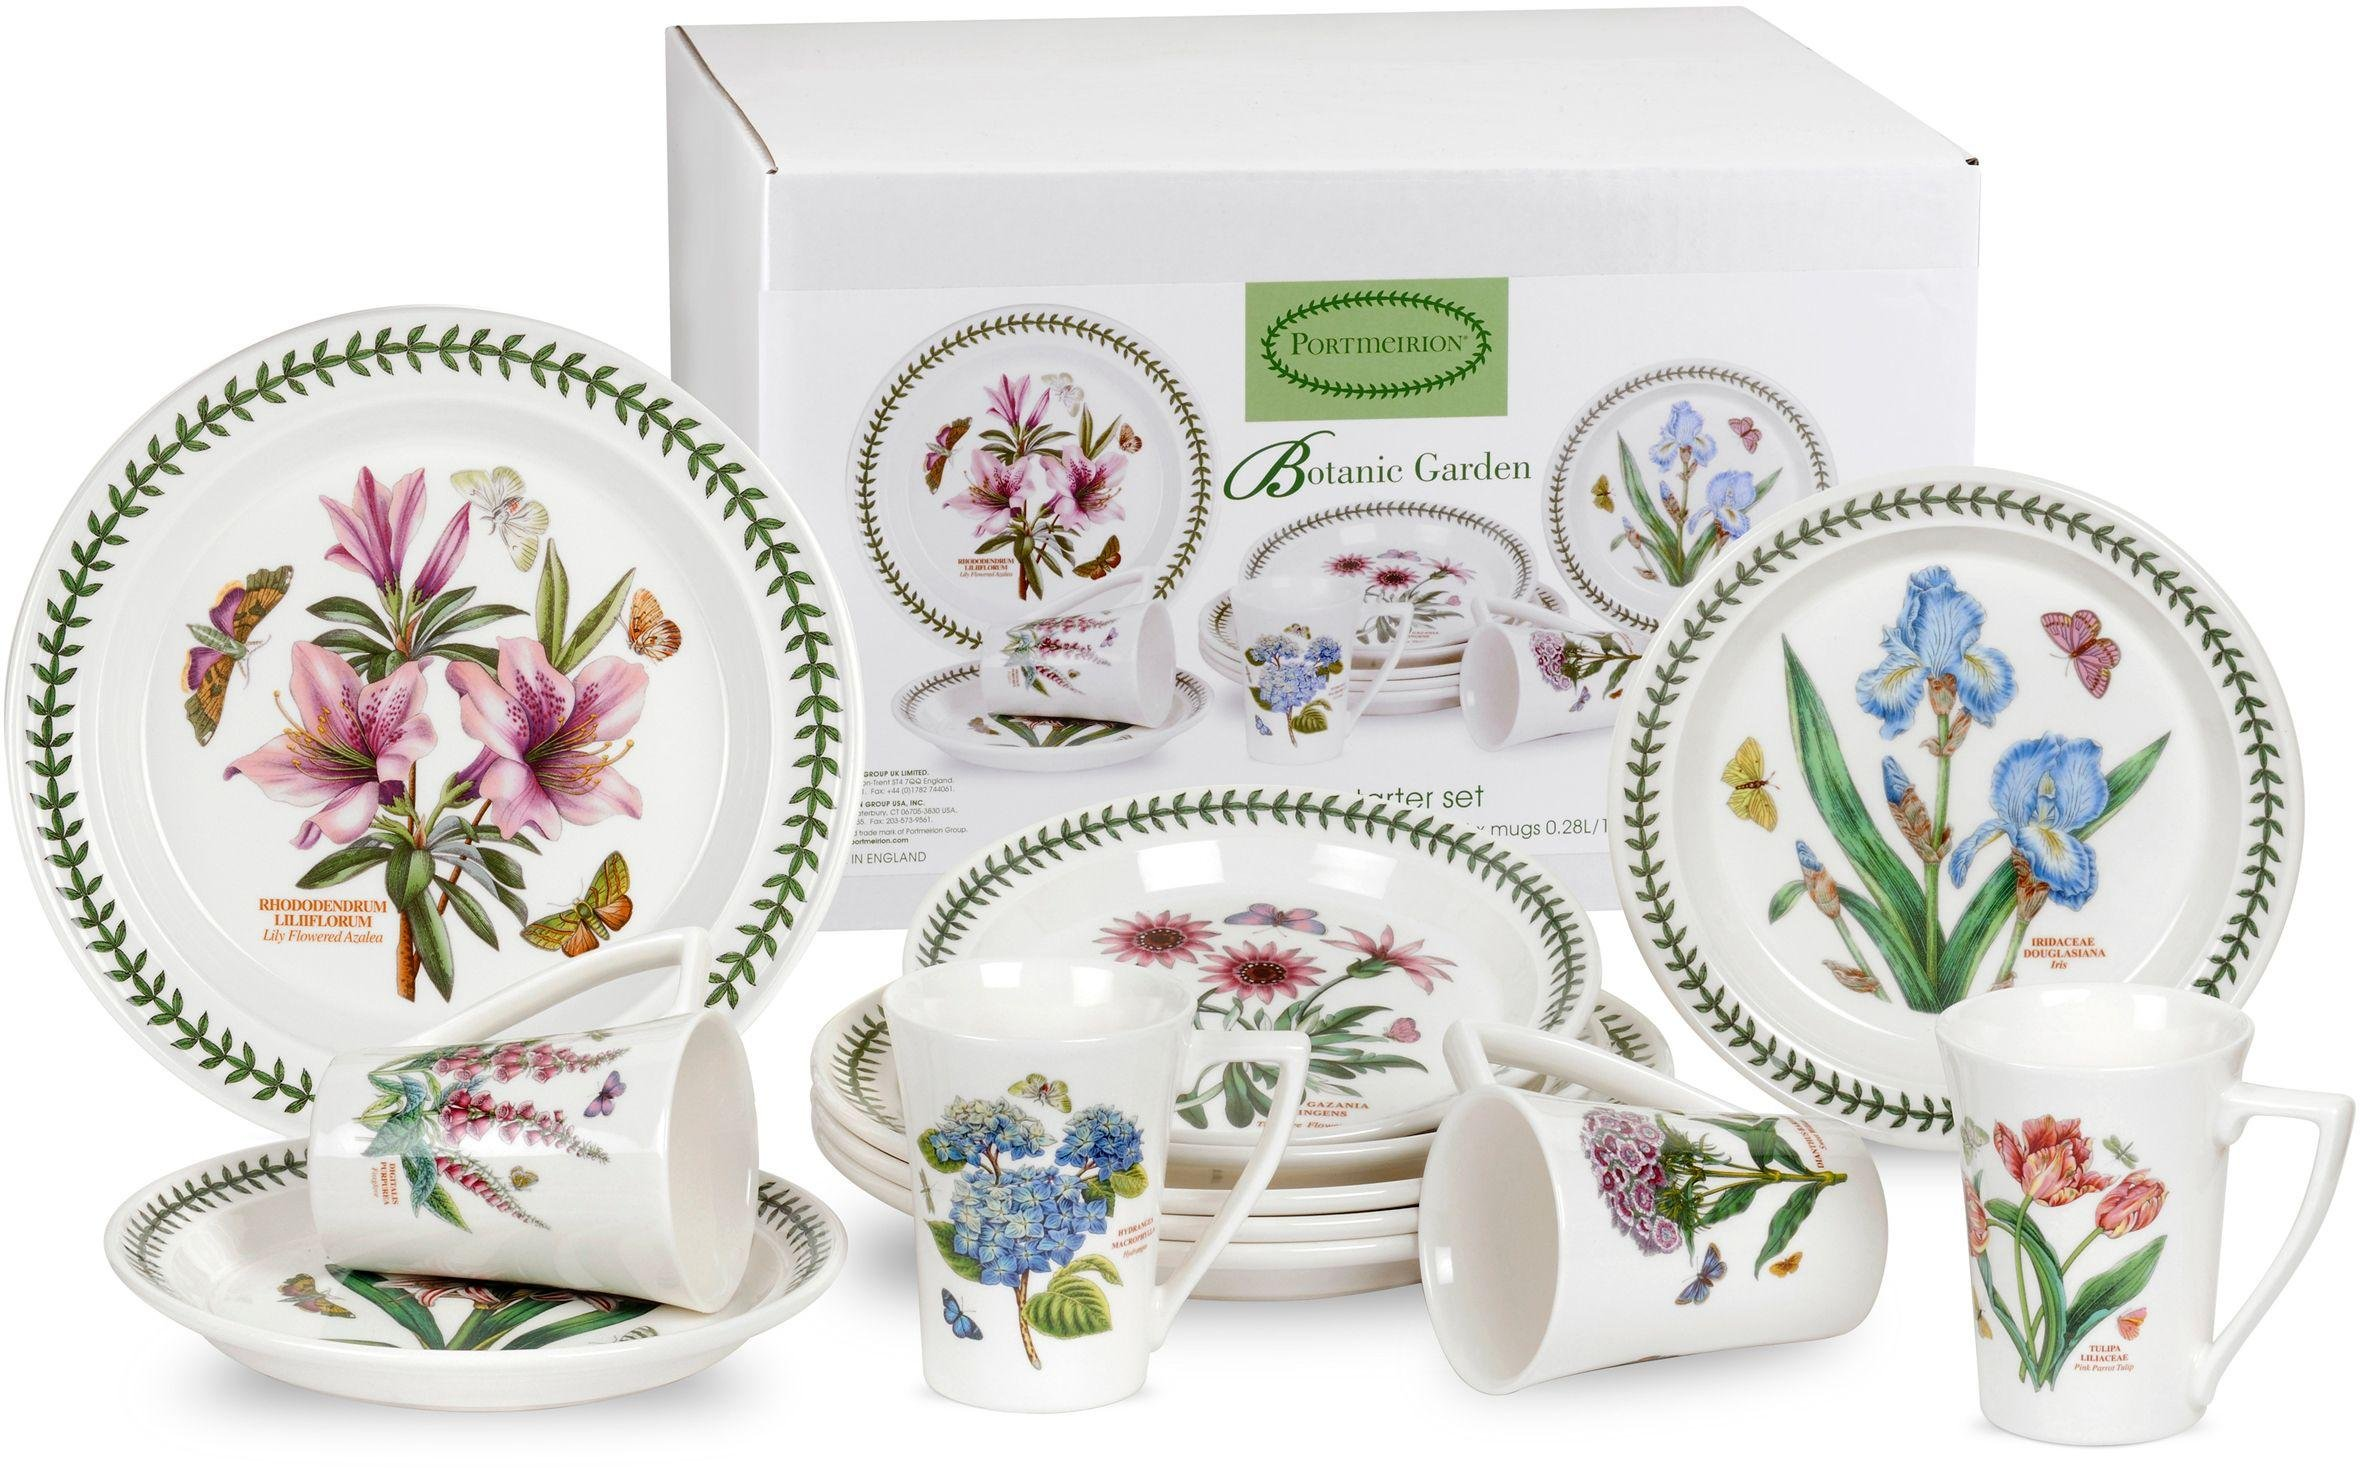 Portmeirion - Botanic Garden 12 Piece Dinner Set